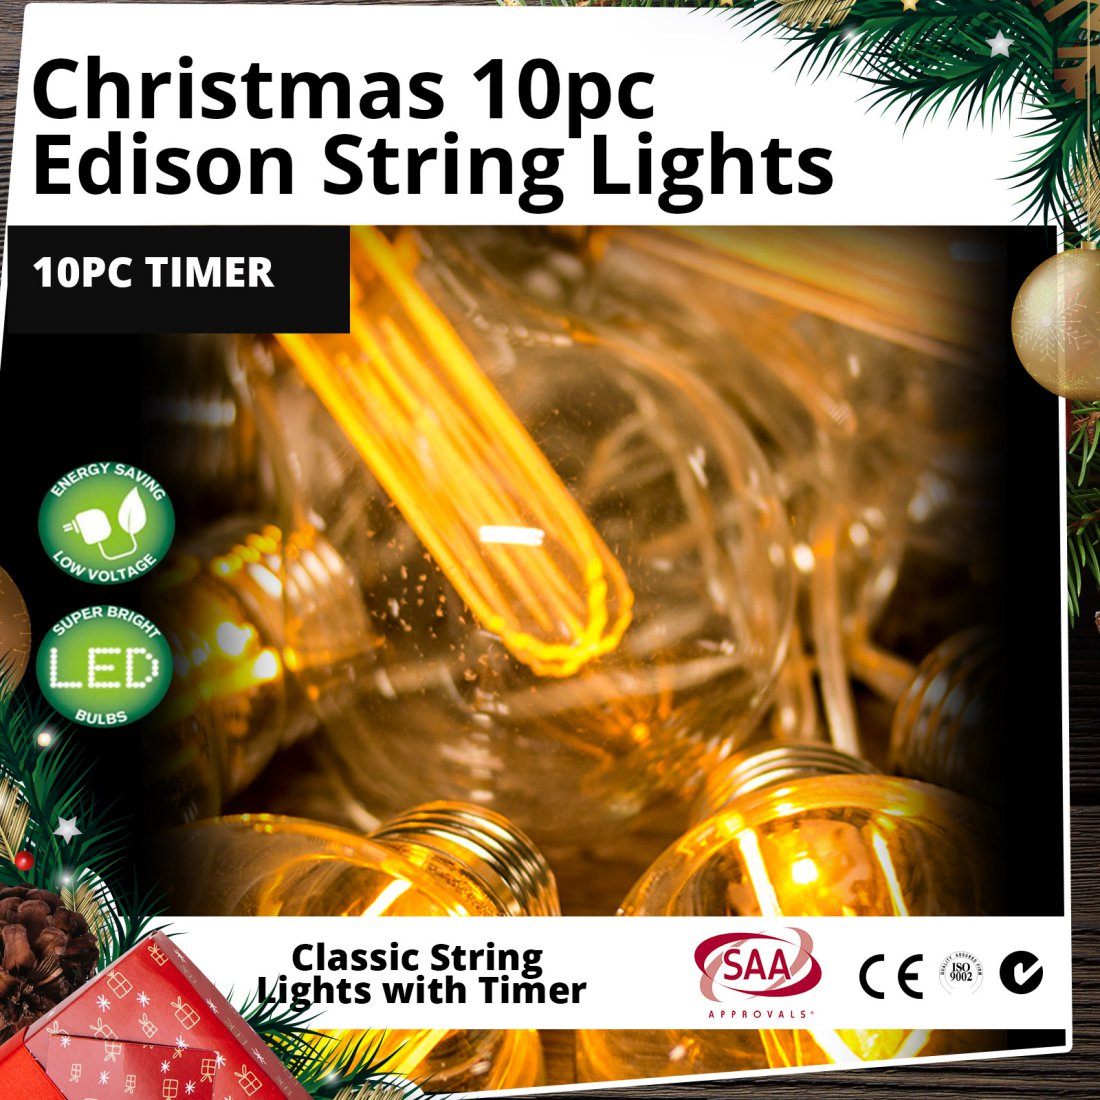 Outdoor LED Edison String Lights 10pc with Timer Christmas Display (CLEARANCE)